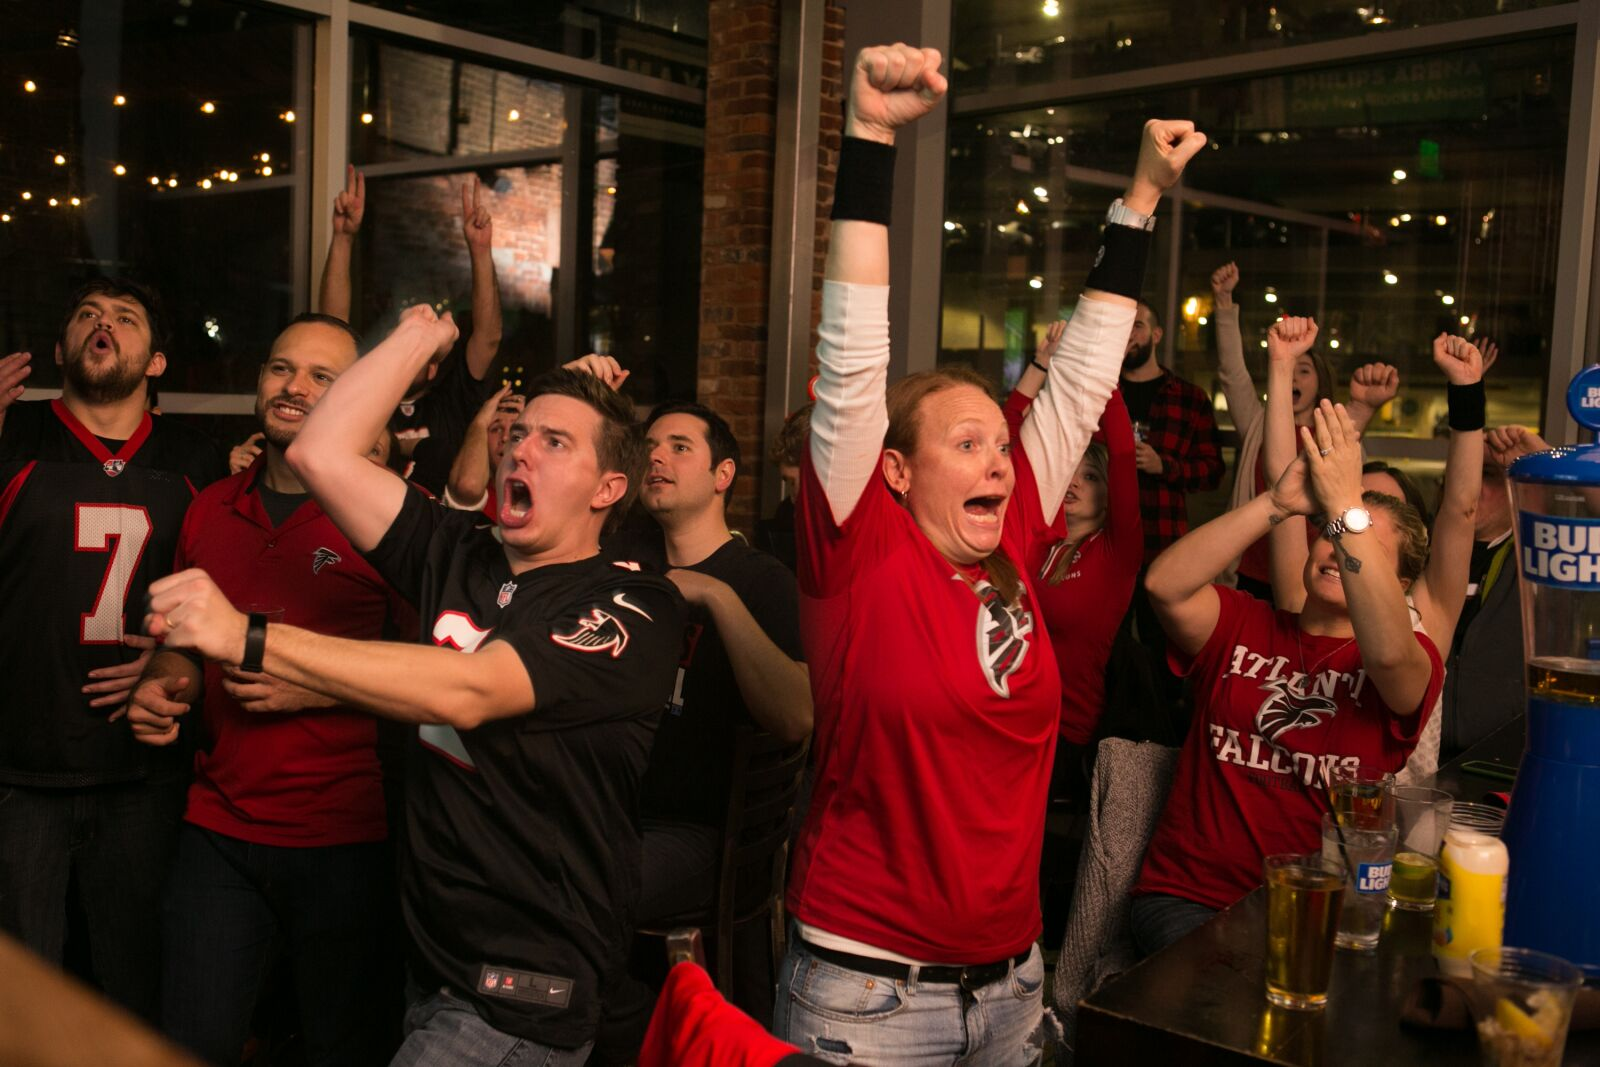 Despite emotional roller coaster Atlanta Falcons fans, today will be fun